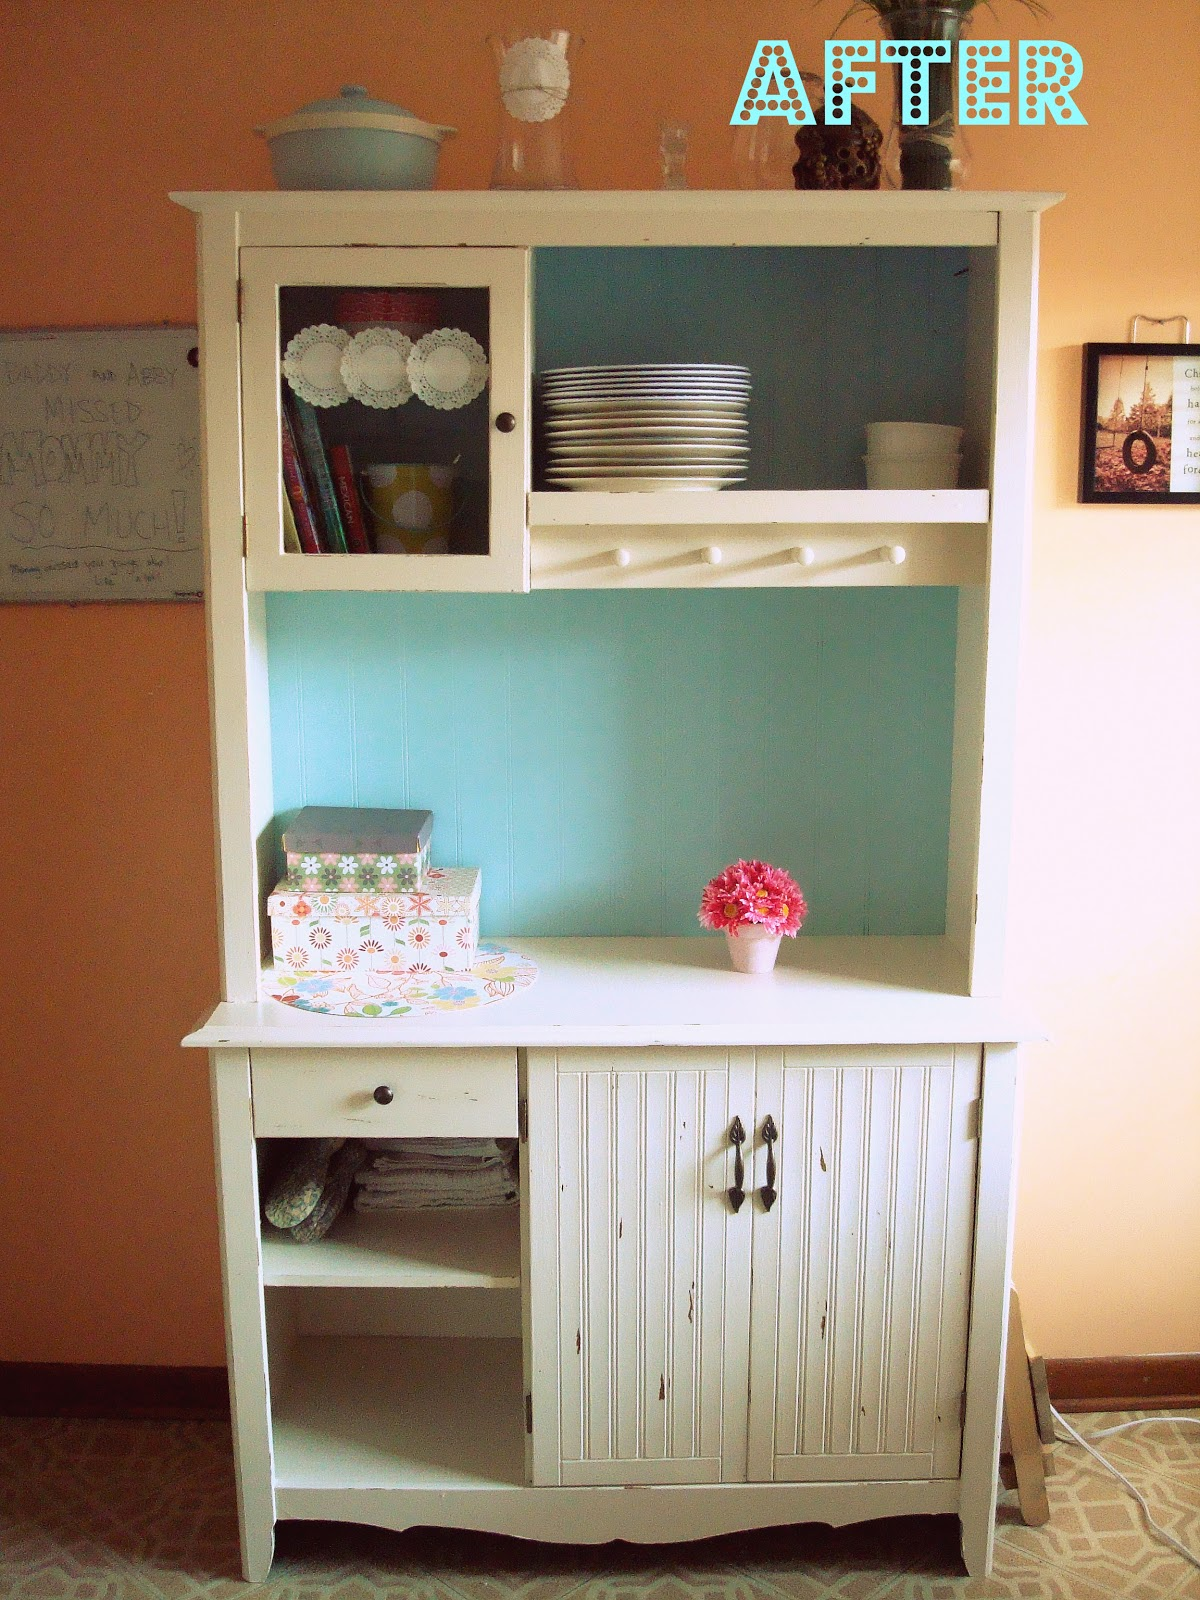 hip2thrift: Thrift Store Kitchen Hutch redo - tutorial